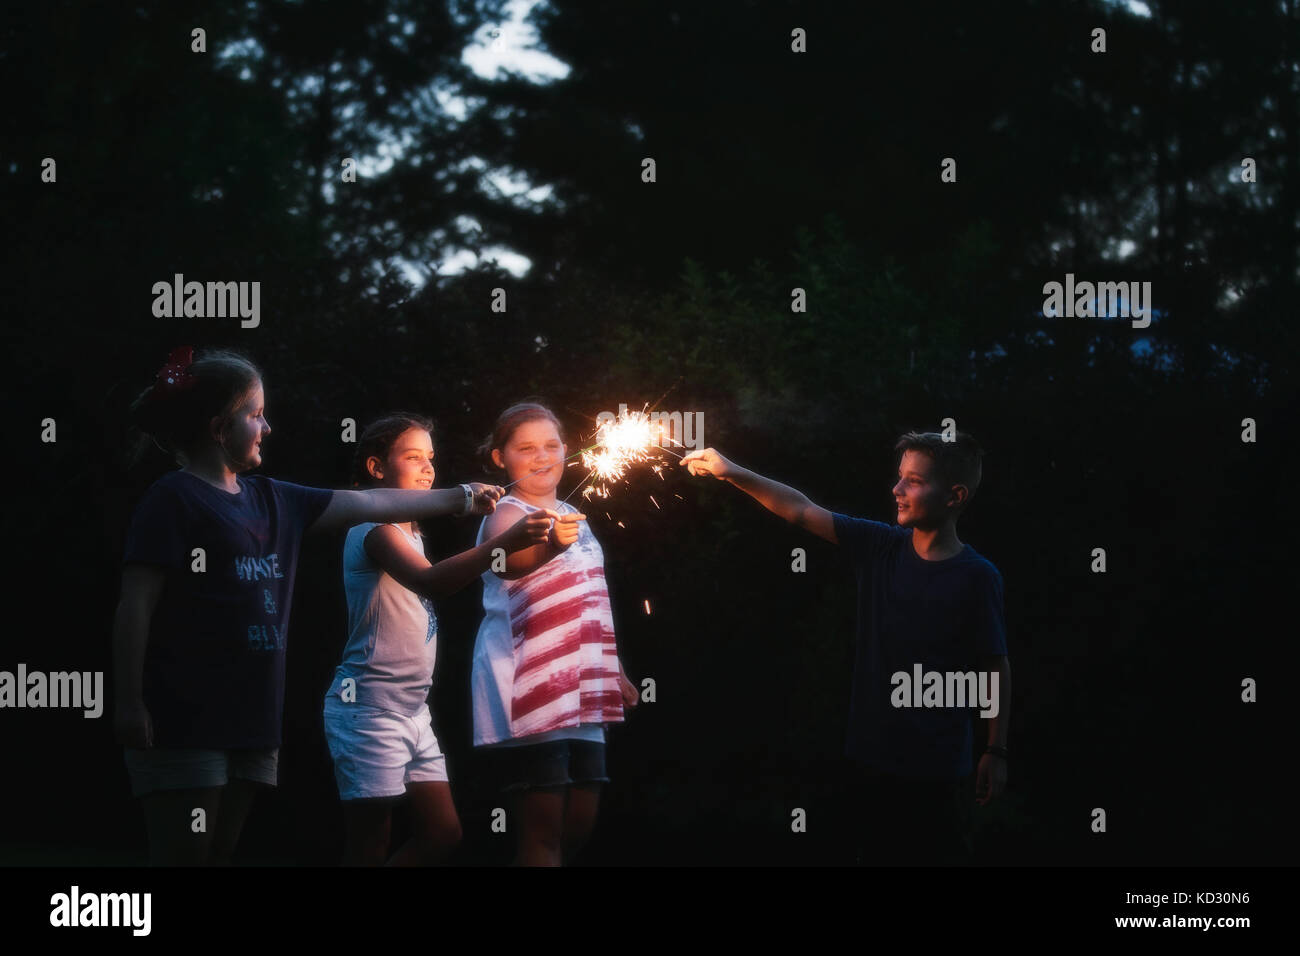 Boy and three girls igniting sparklers together at night on independence day, USA Stock Photo